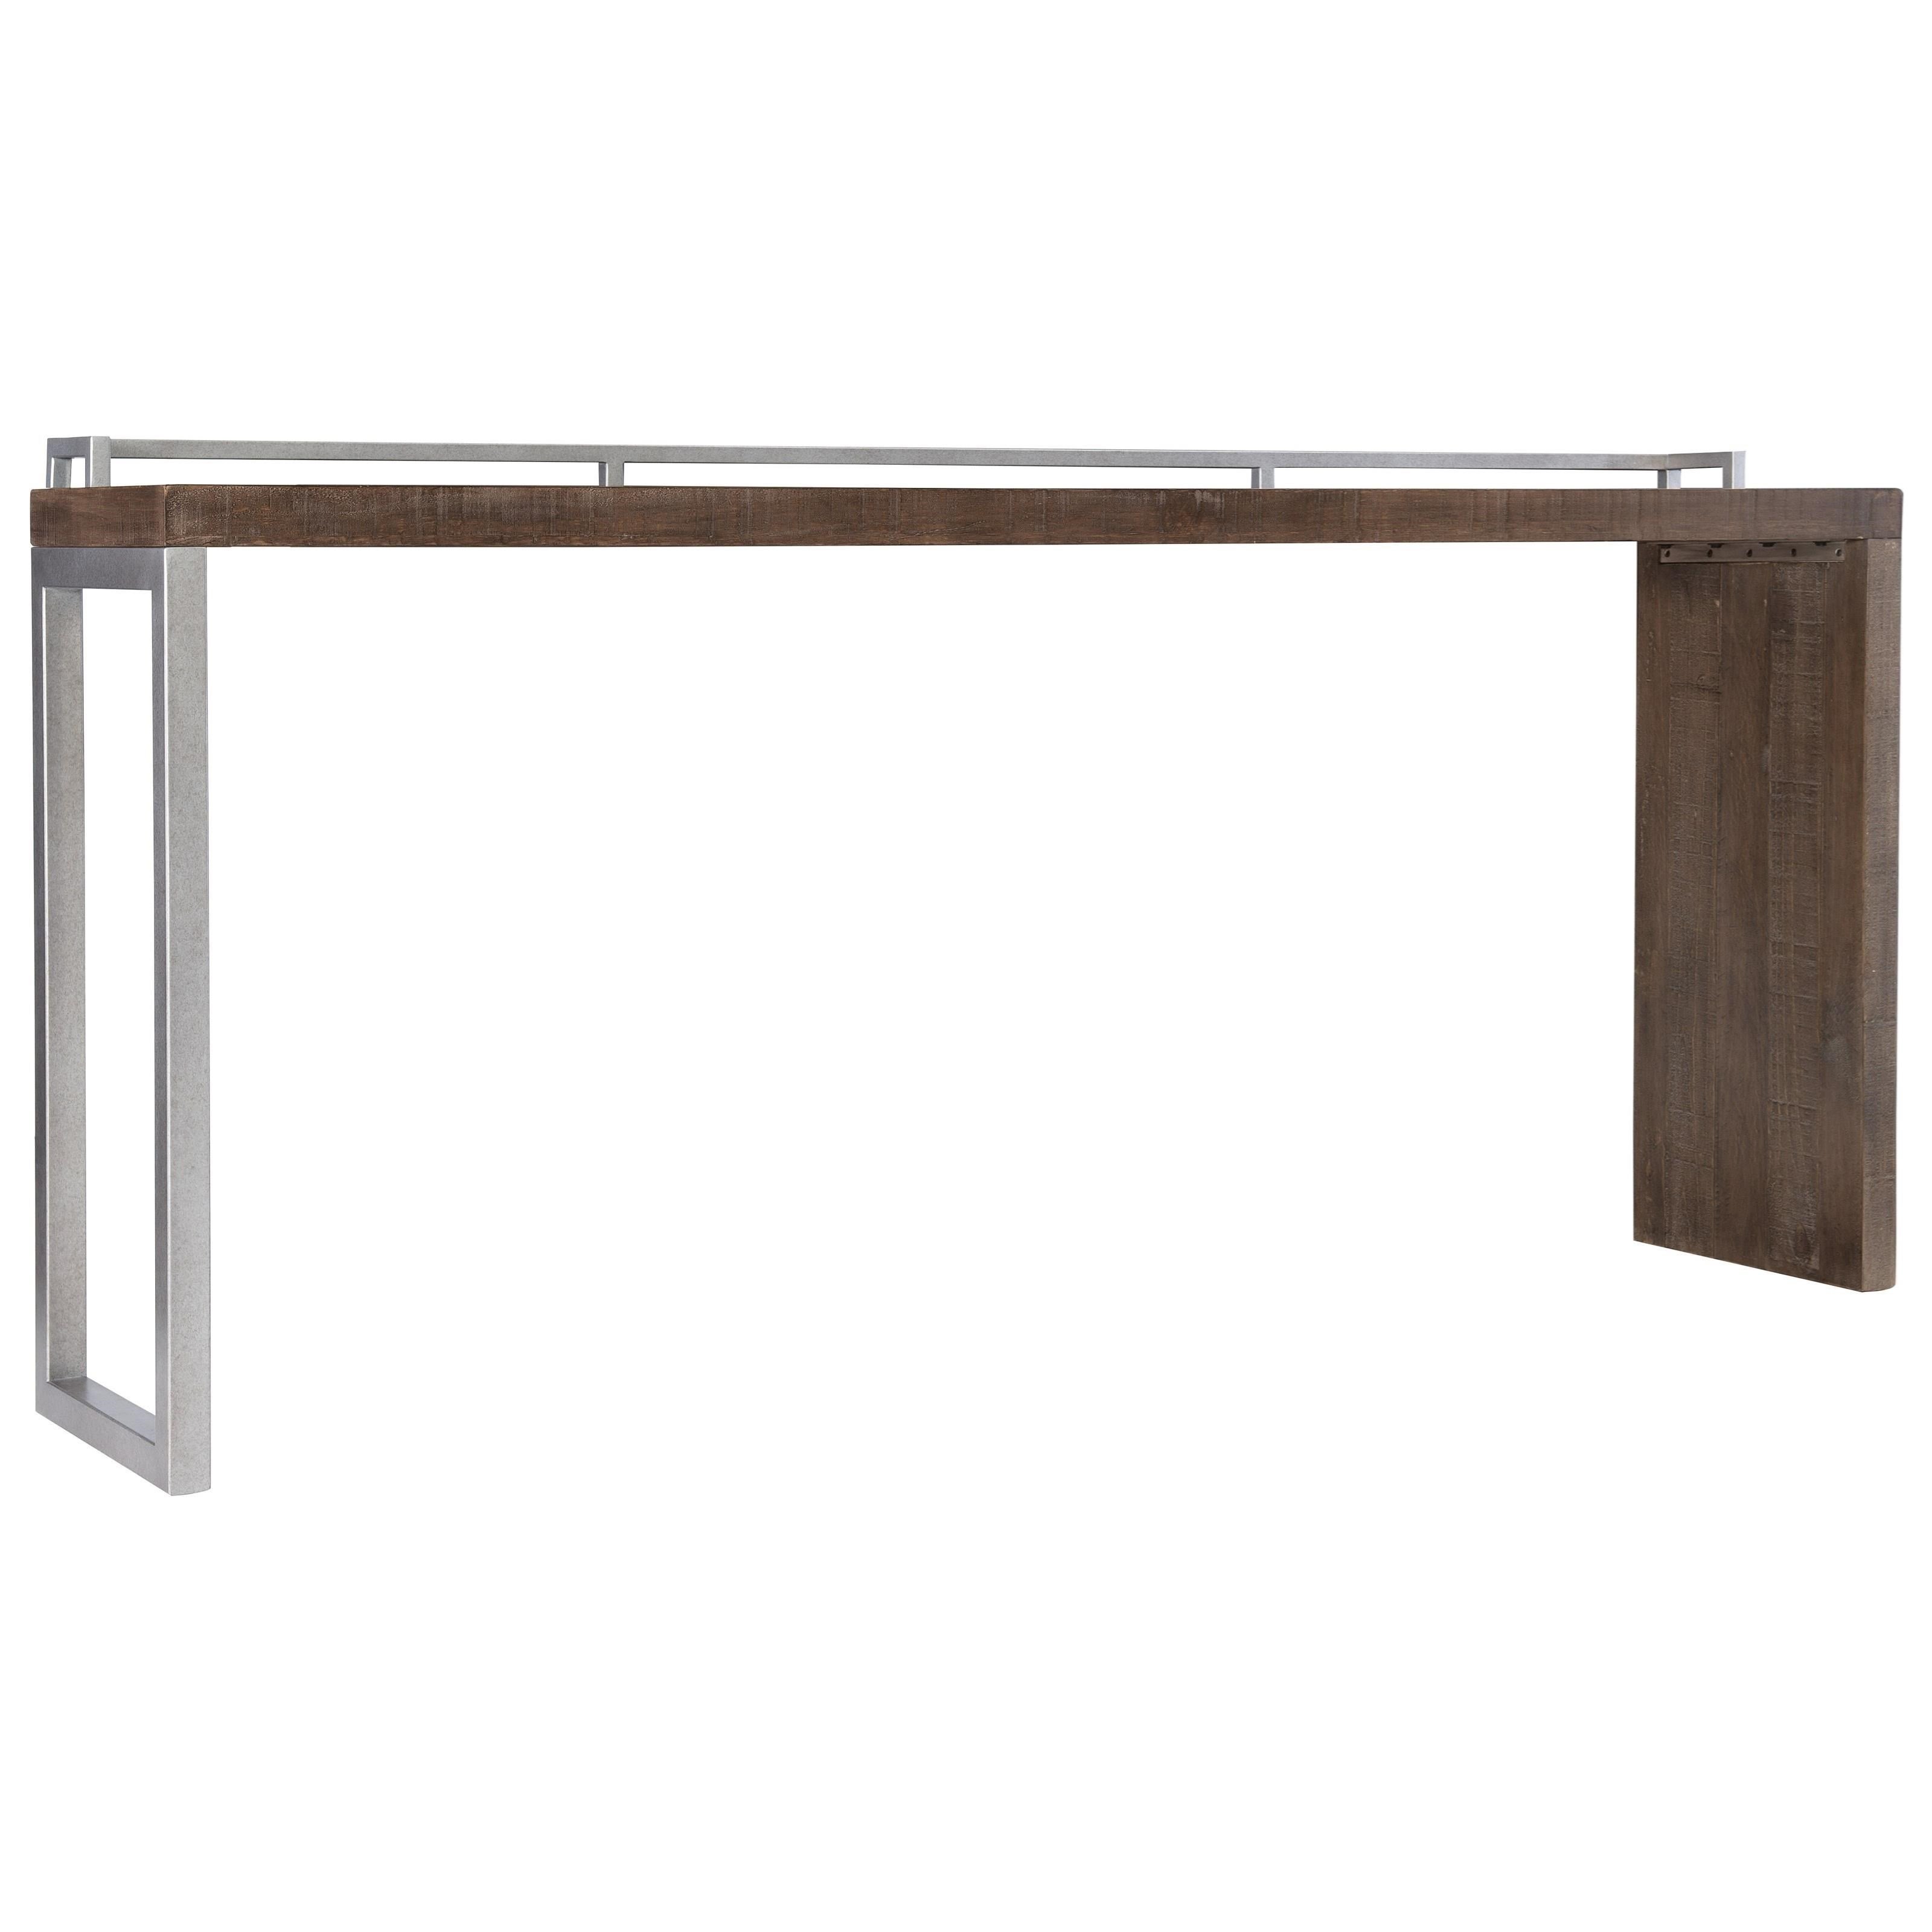 Loft - Logan Square Reilly Console Table by Bernhardt at Baer's Furniture